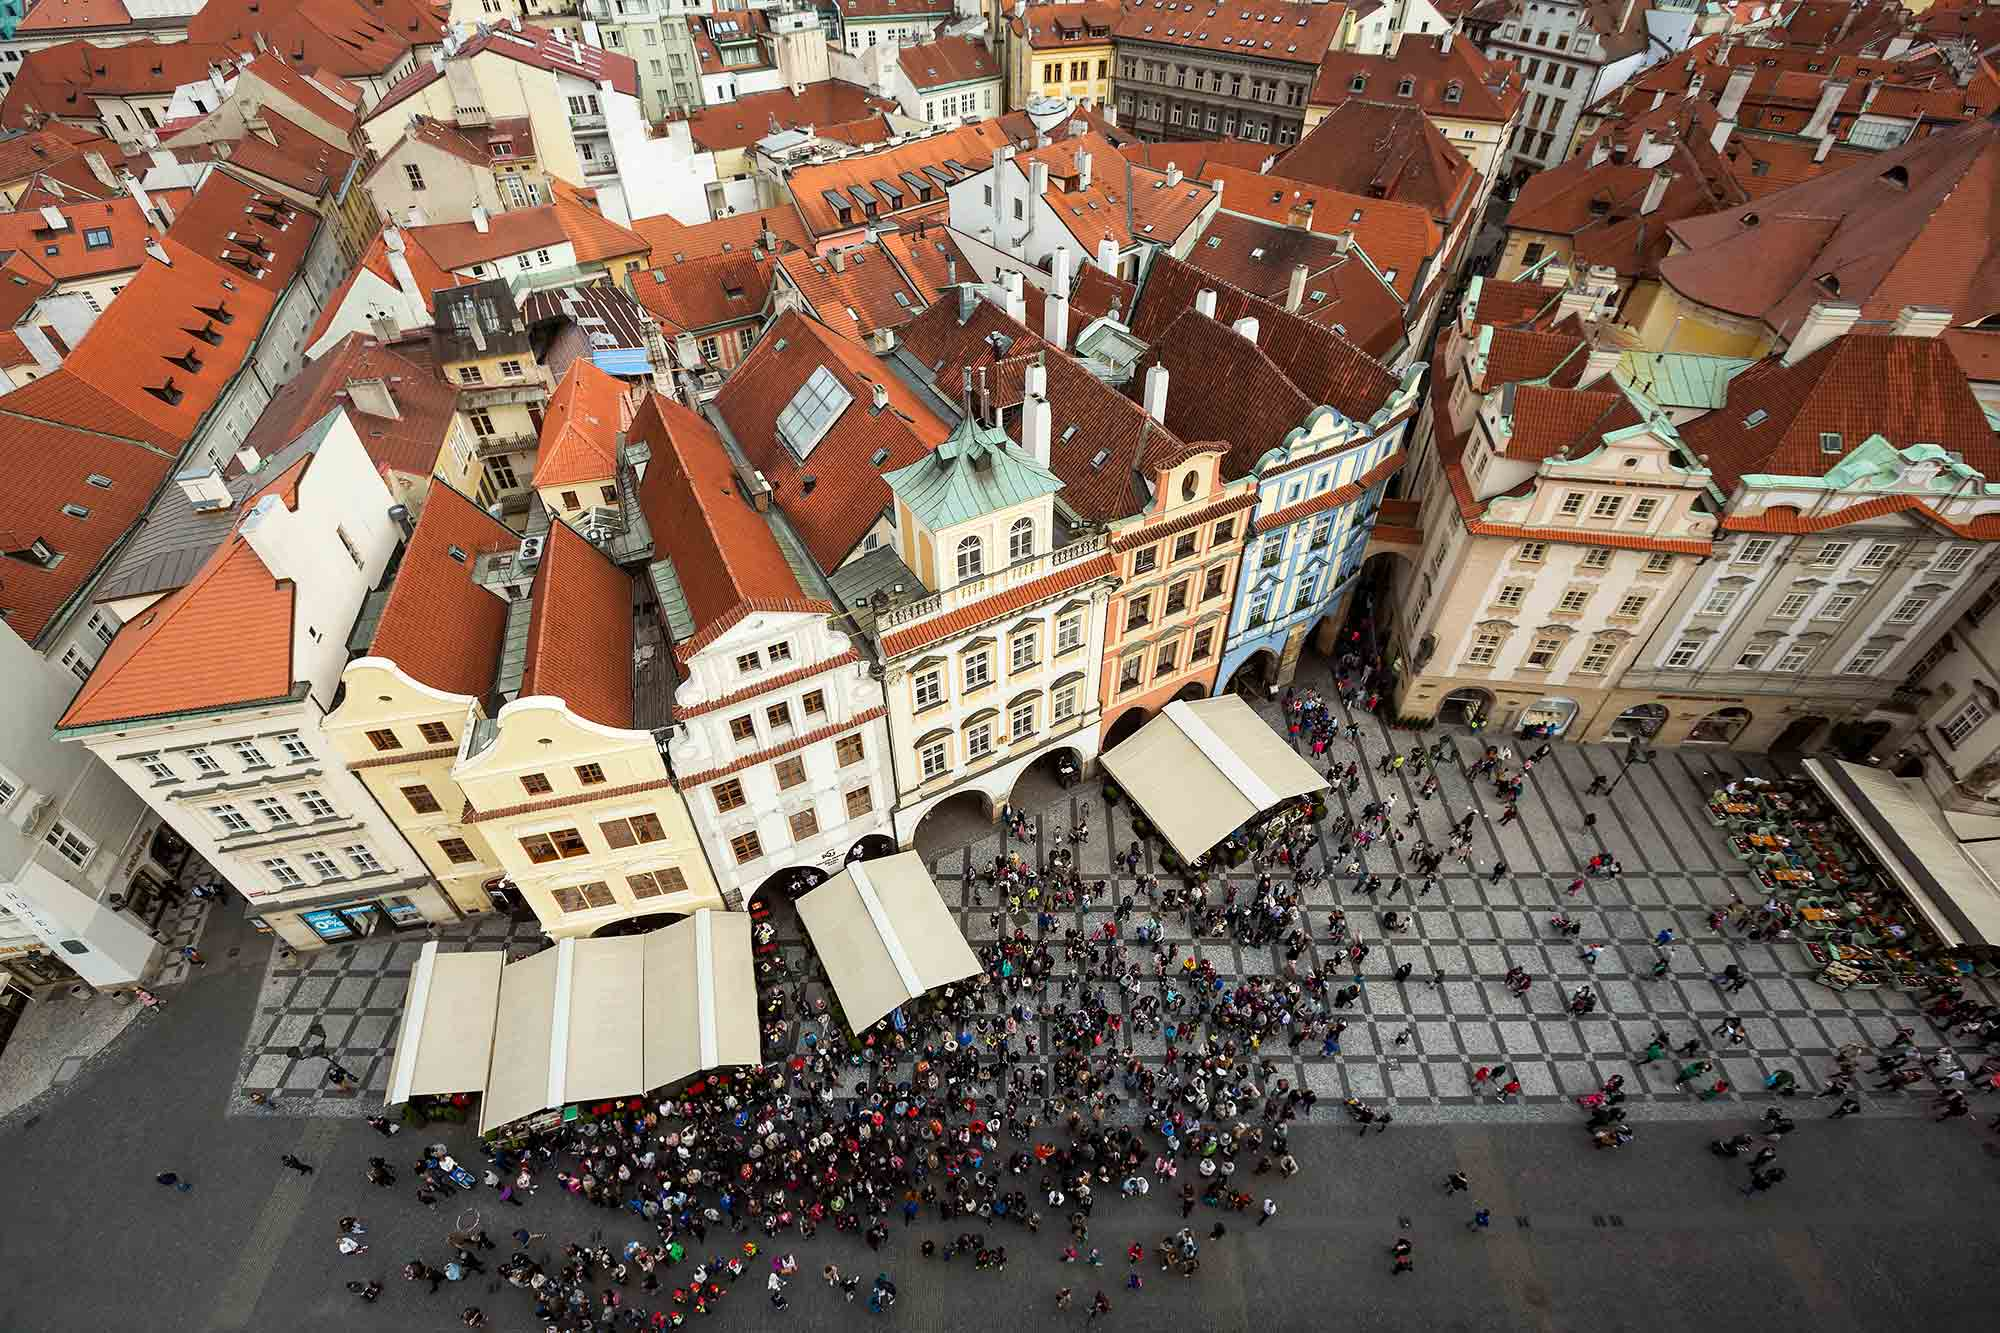 prague-old-town-spare-view-from-town-hall-czech-republic